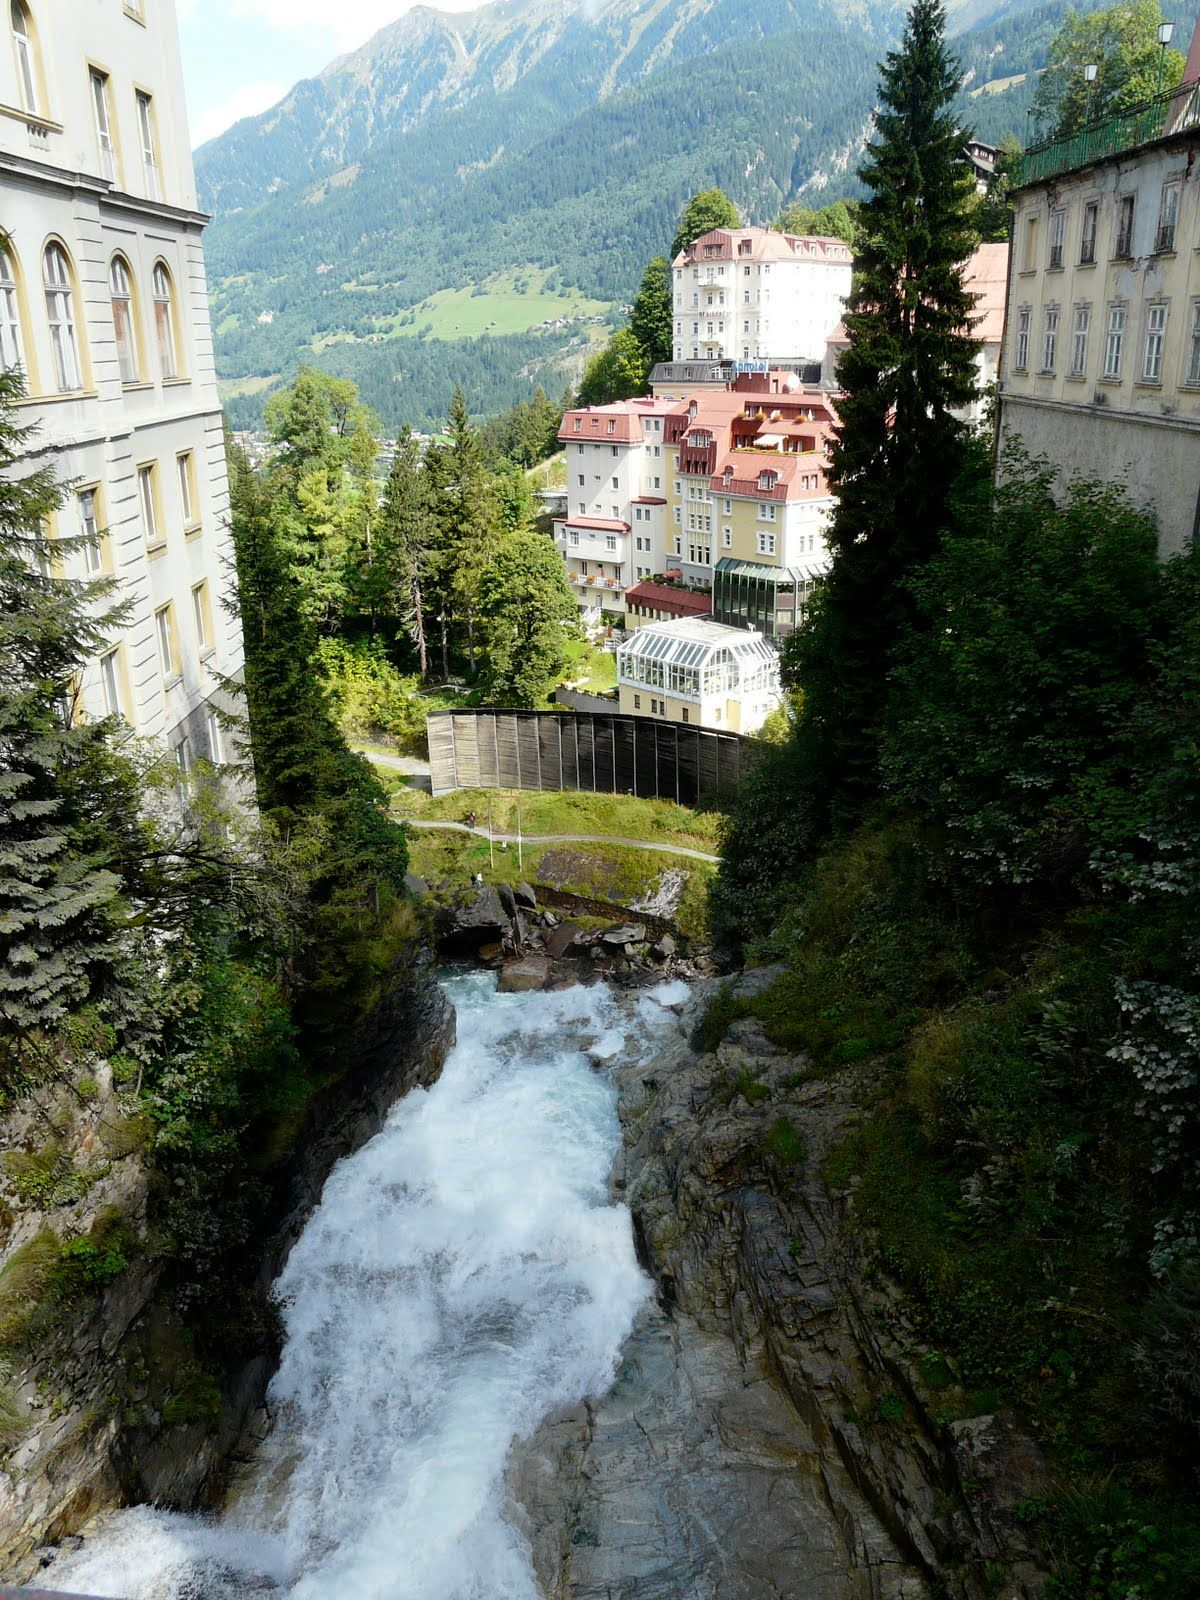 Bad Gastein Austria Hiking Site O The Places You 39 Ll Go - Bad Gastein